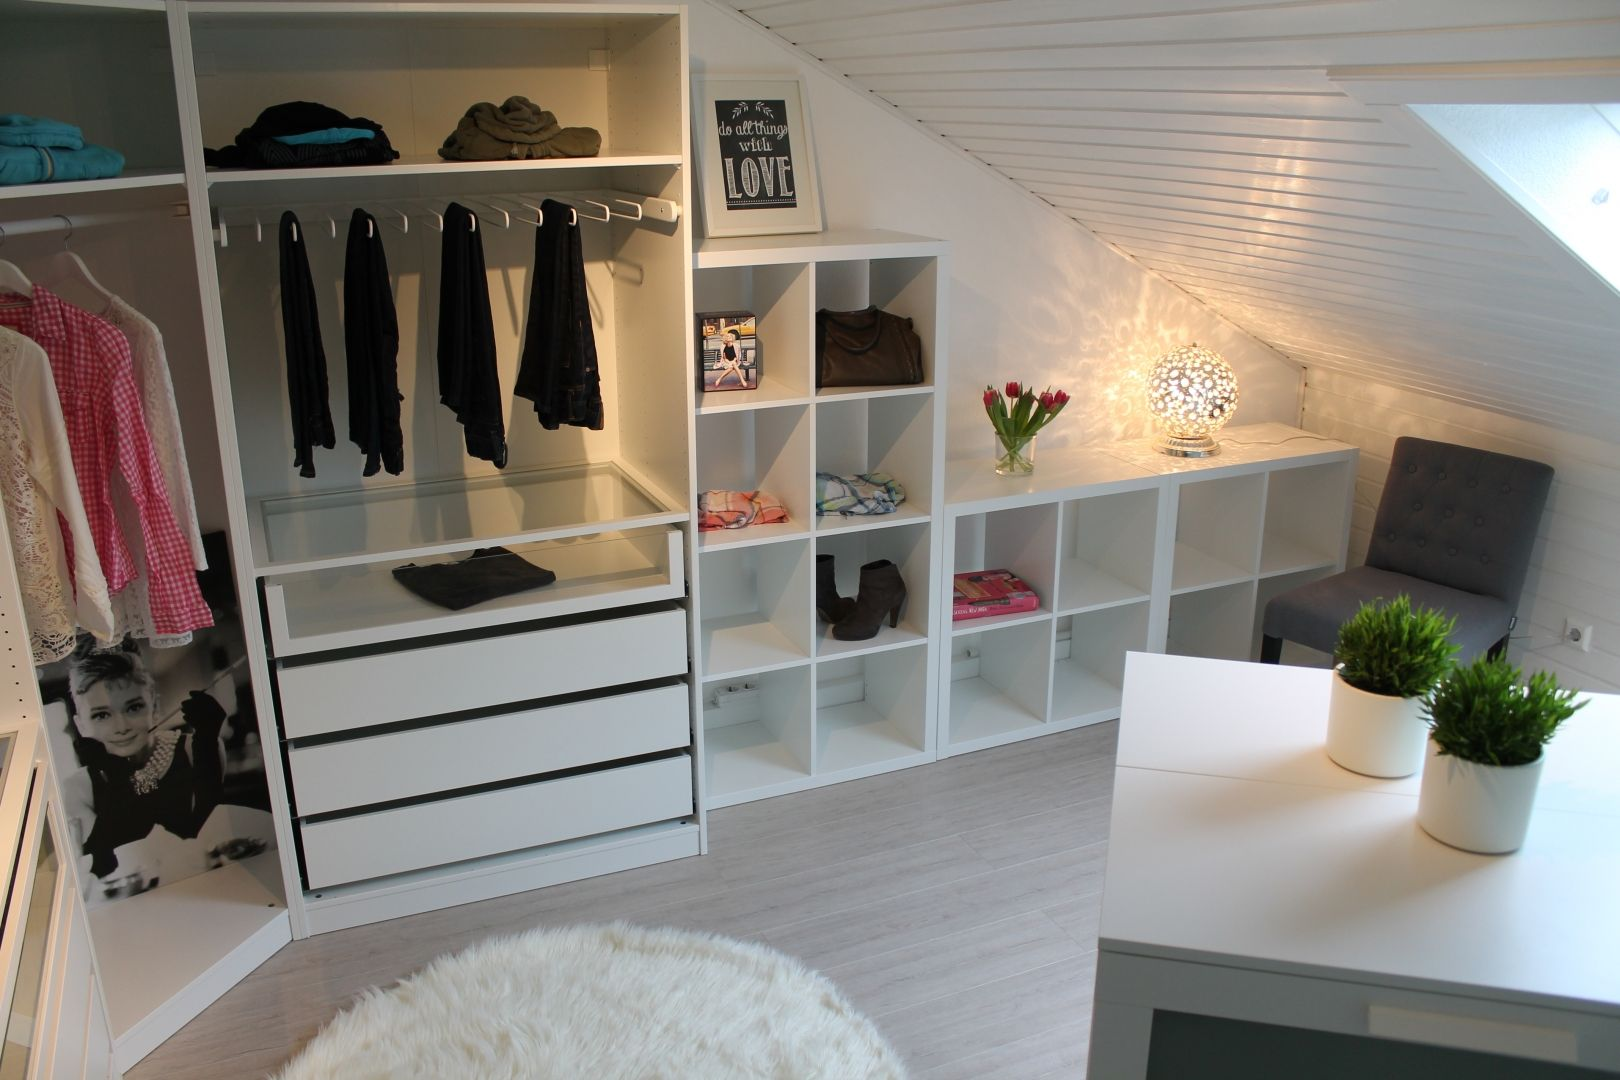 Begehbarer Kleiderschrank Regalsystem New 26 Schrank Mit Ikea Pax Is A Girls Best Friend Casa De Mia